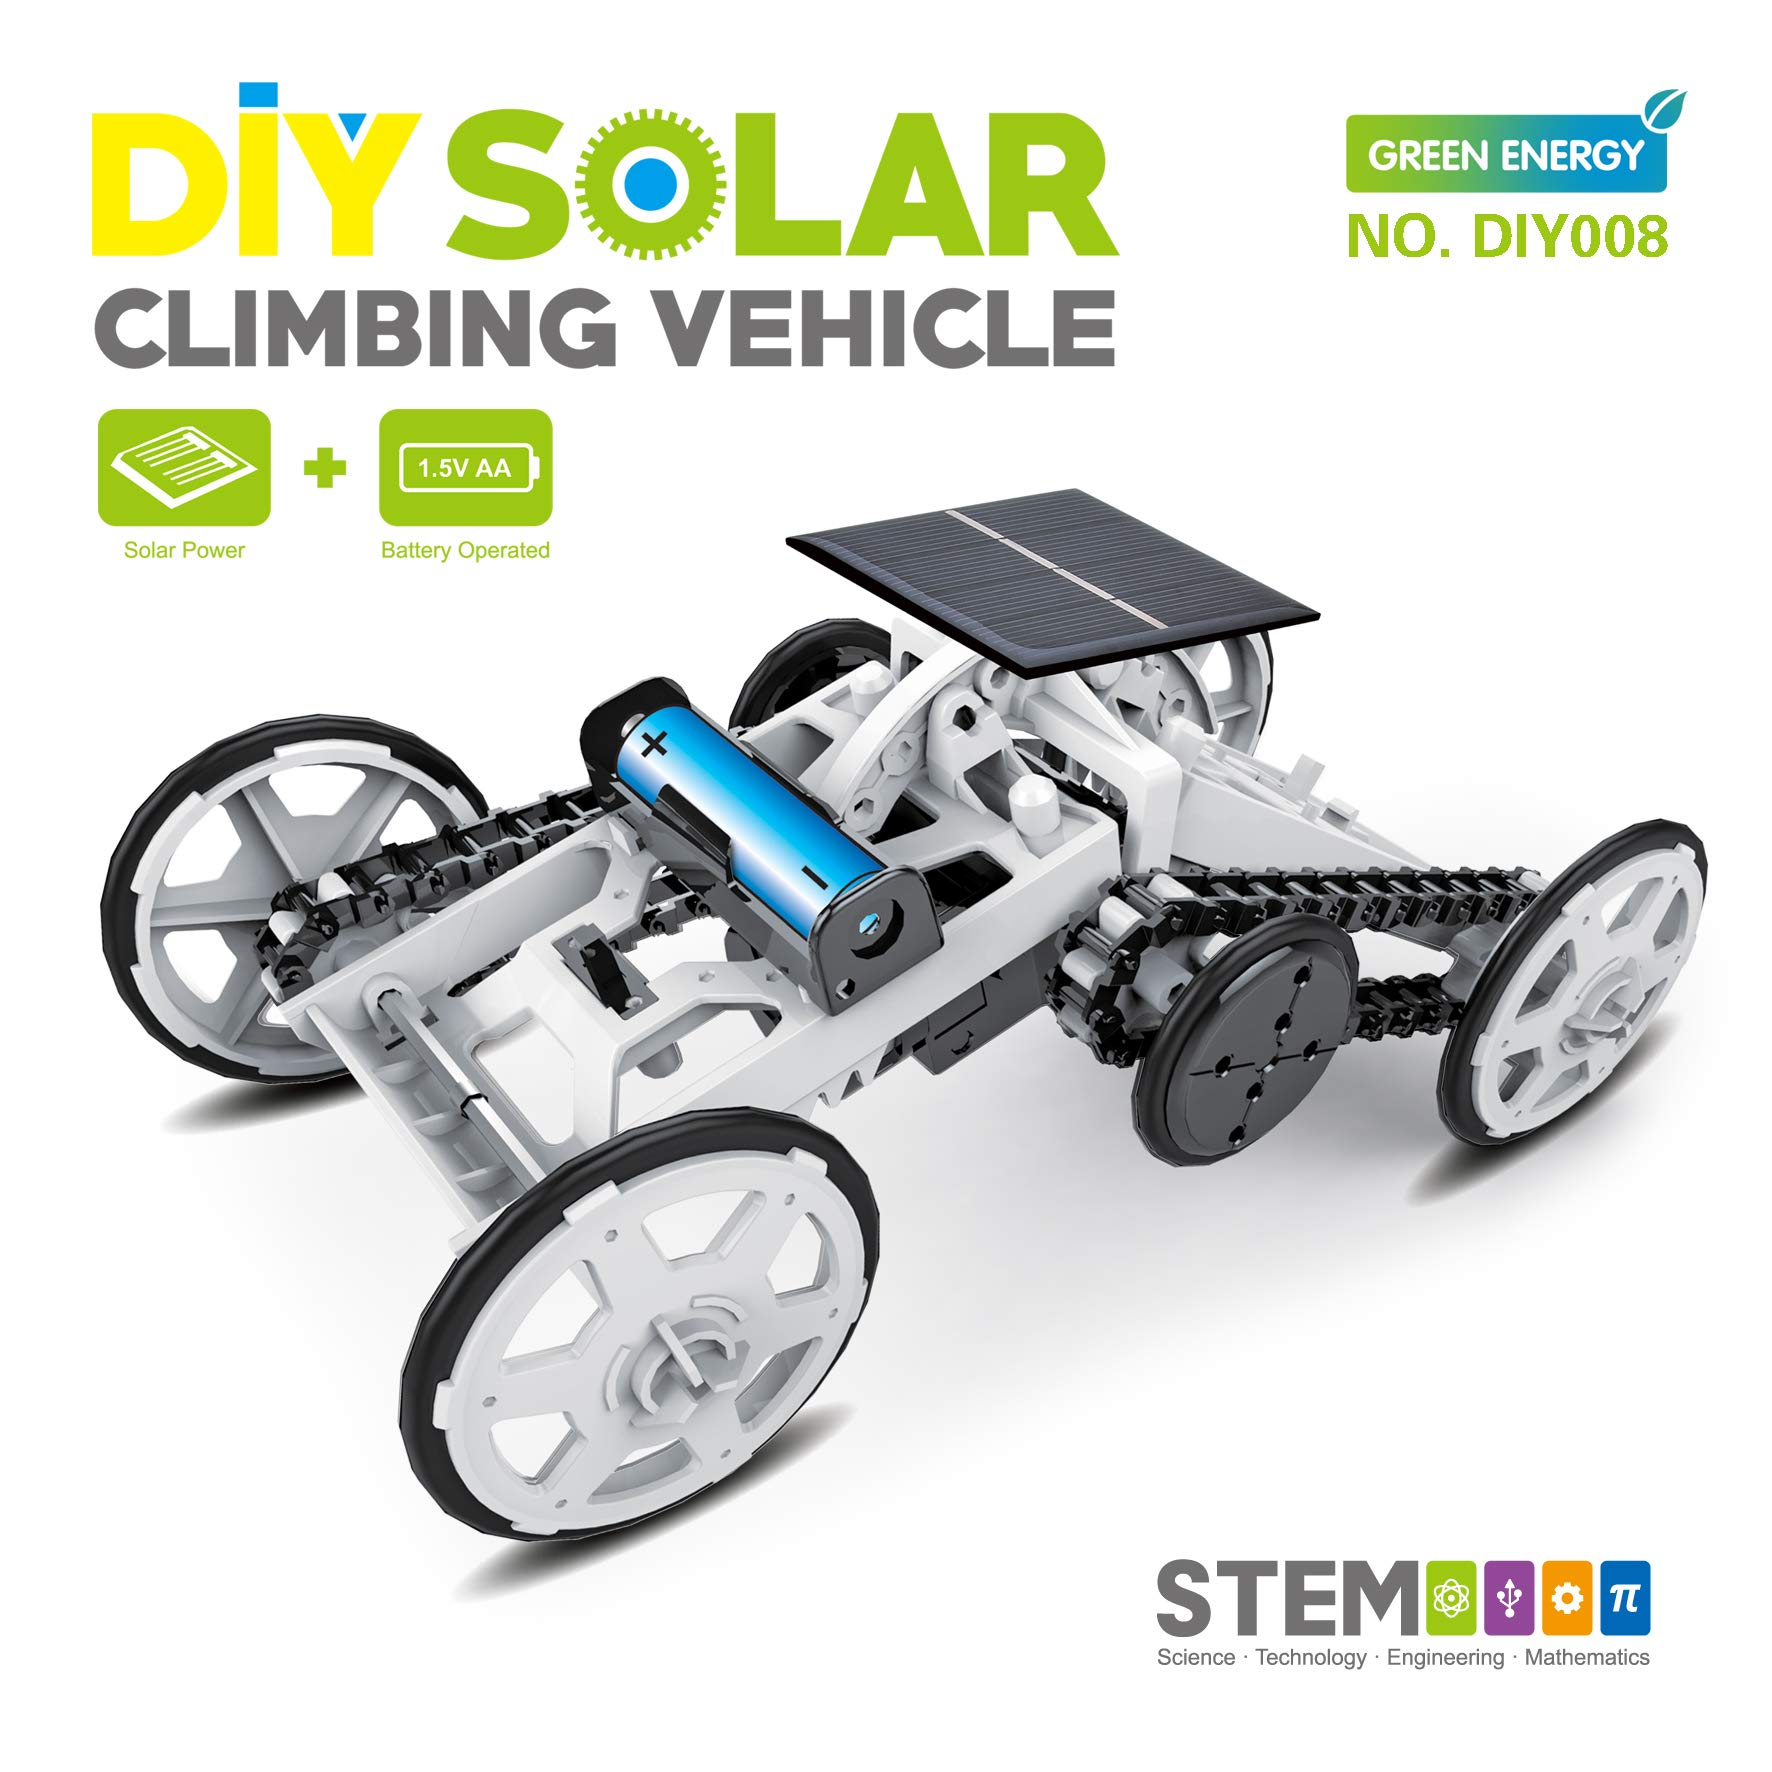 STEM 4WD car DIY Climbing Vehicle Motor car Educational Solar Powered car Engineering car for Kids,Assembly Gift Toy Circuit Building Projects Science Experiment,Building Toys by MDGZY